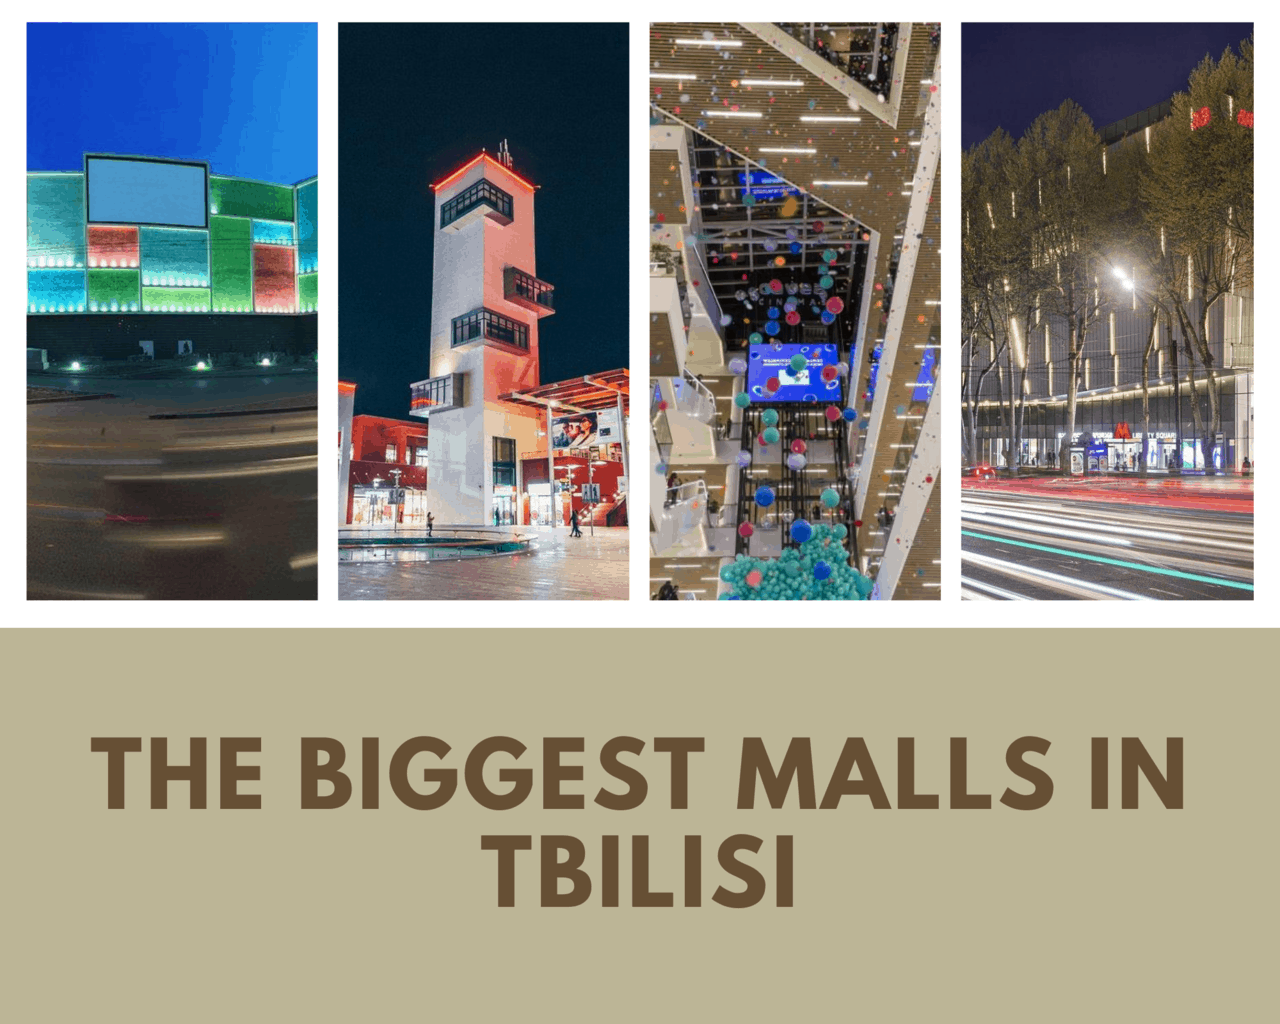 The BIGGEST Malls in Tbilisi   4 Places To Visit For Exciting Shopping